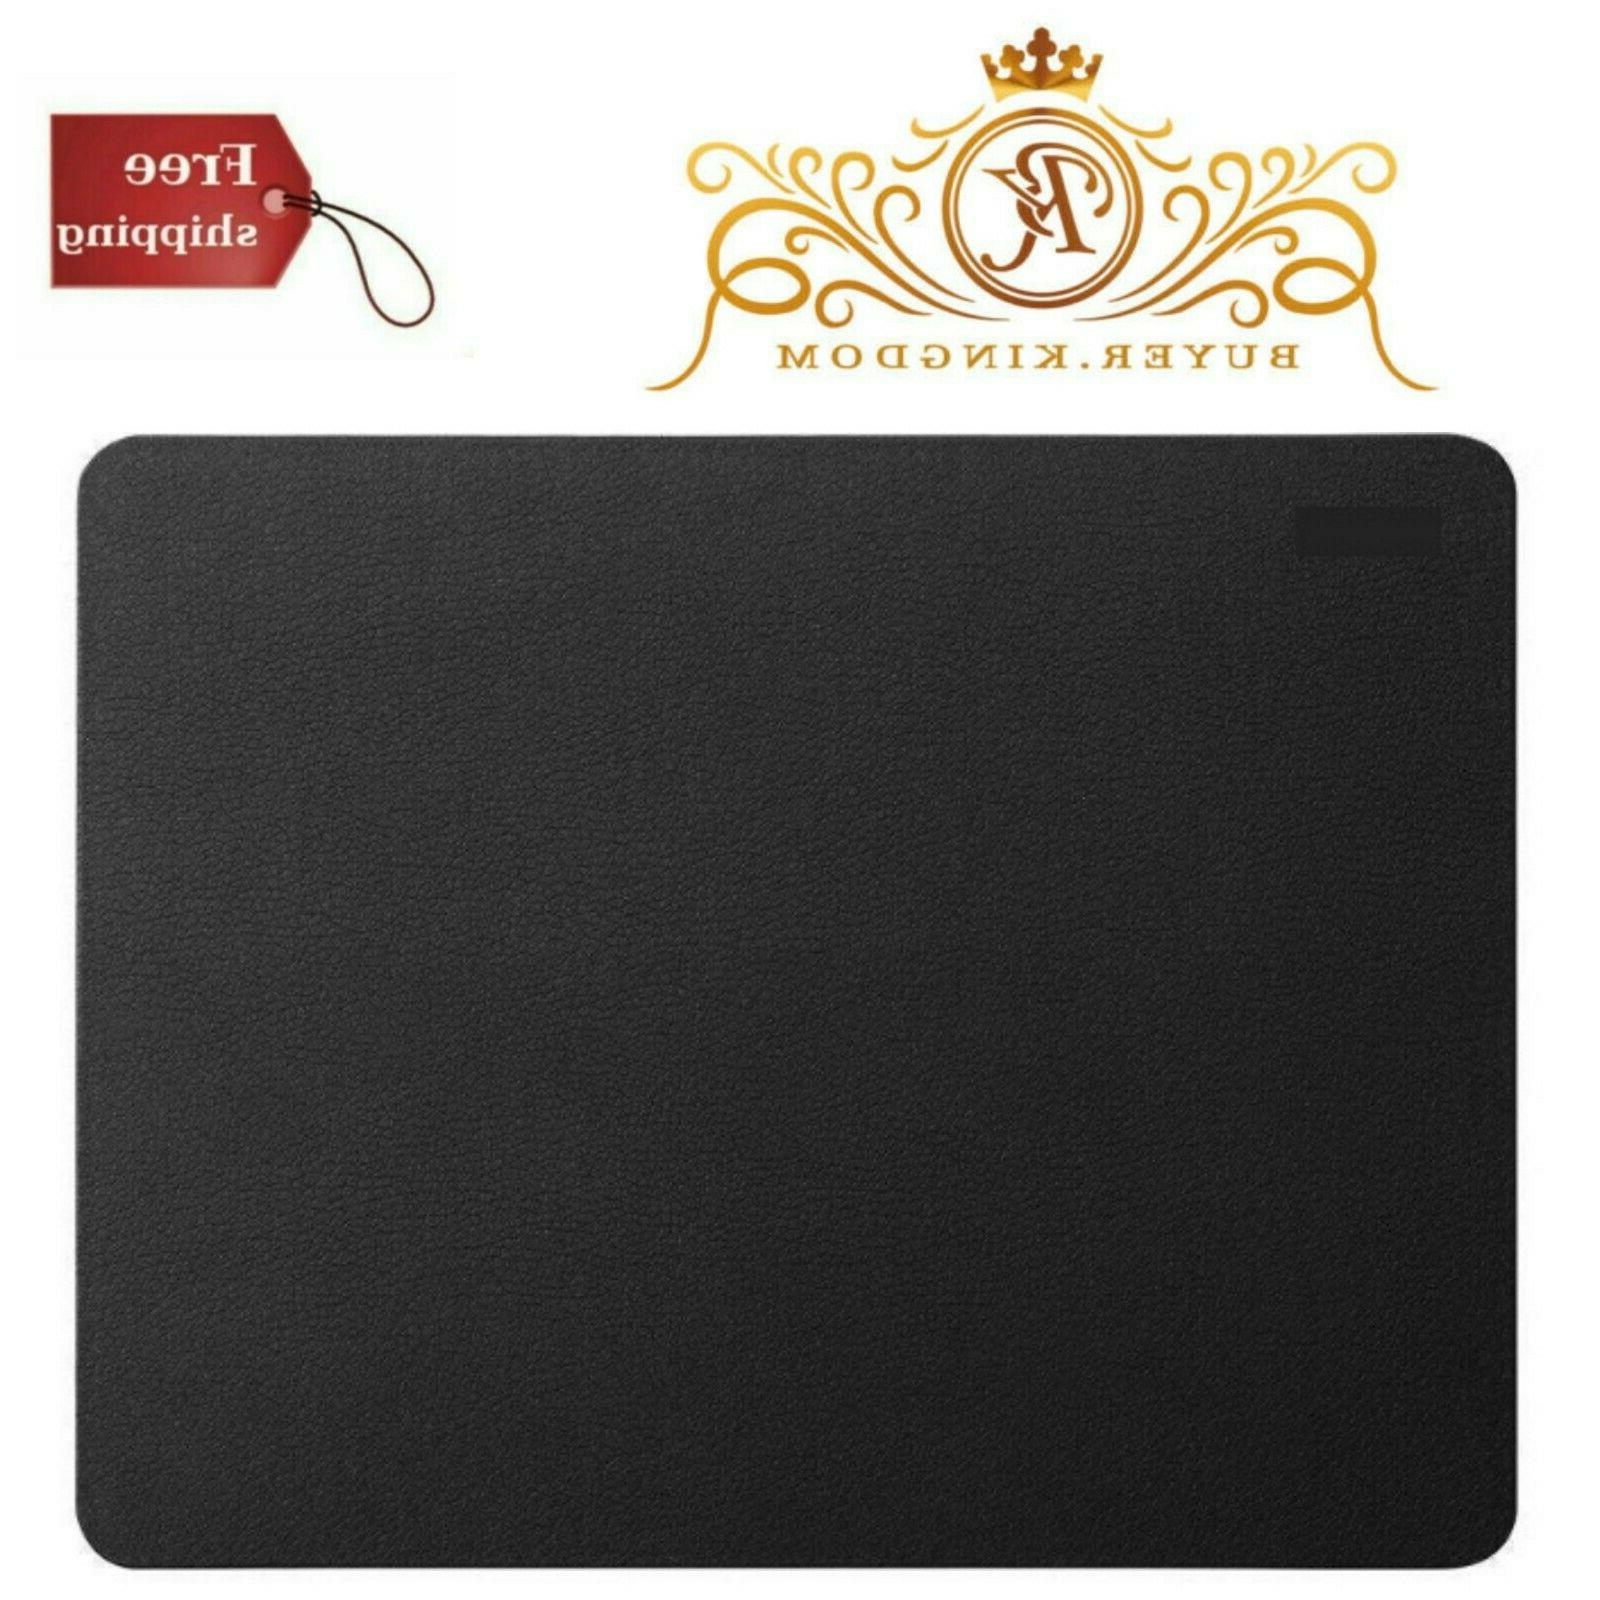 New Version Leather Gaming Mouse Pad Waterproof Coating Non